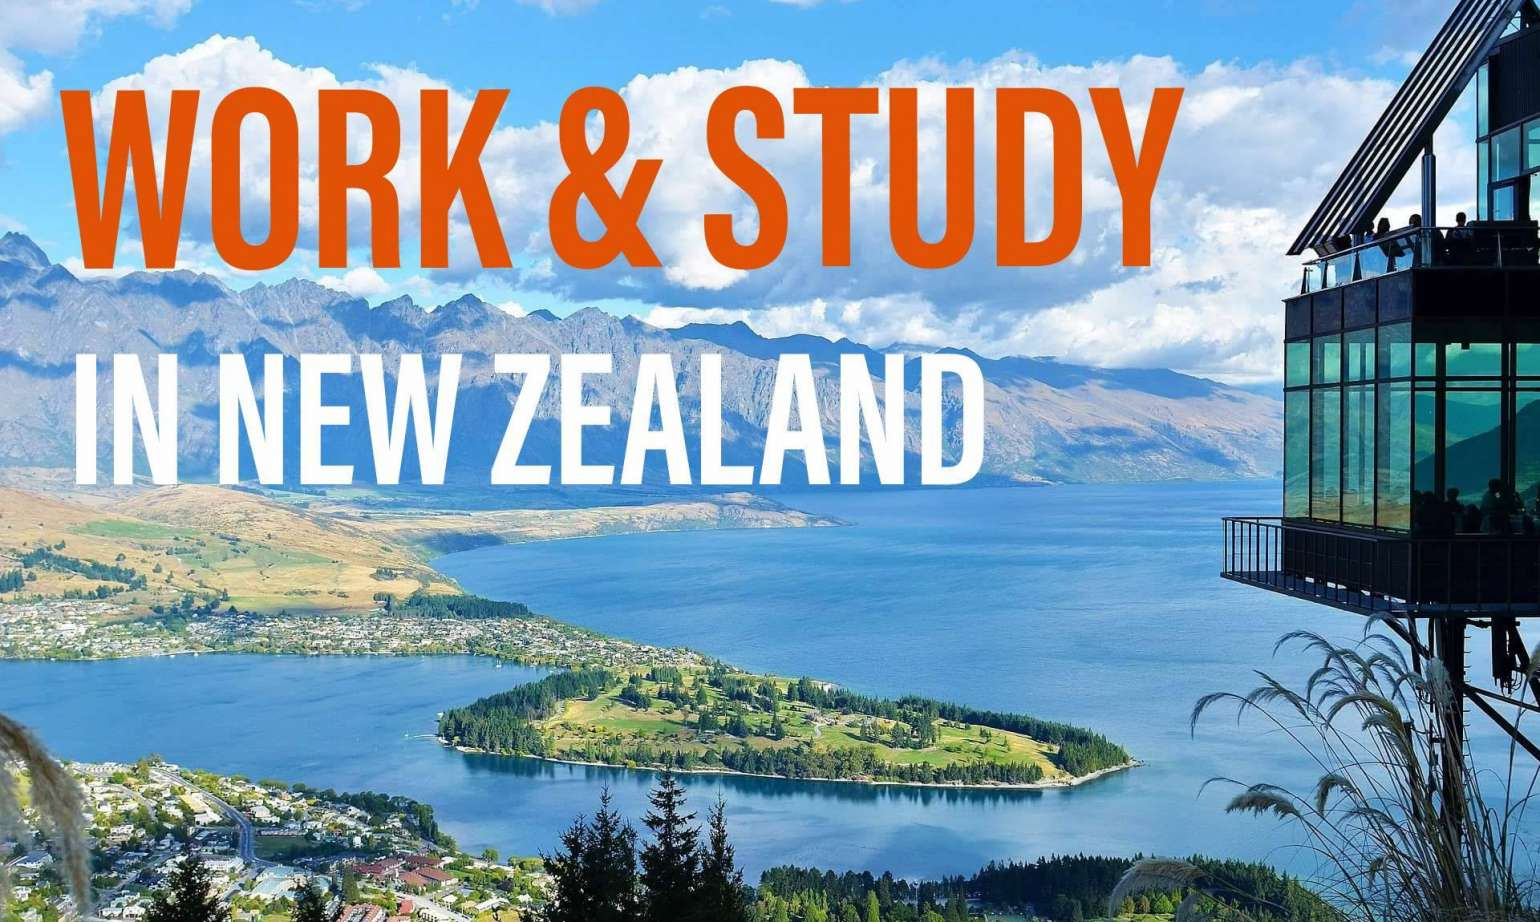 Why work and study in New Zealand?